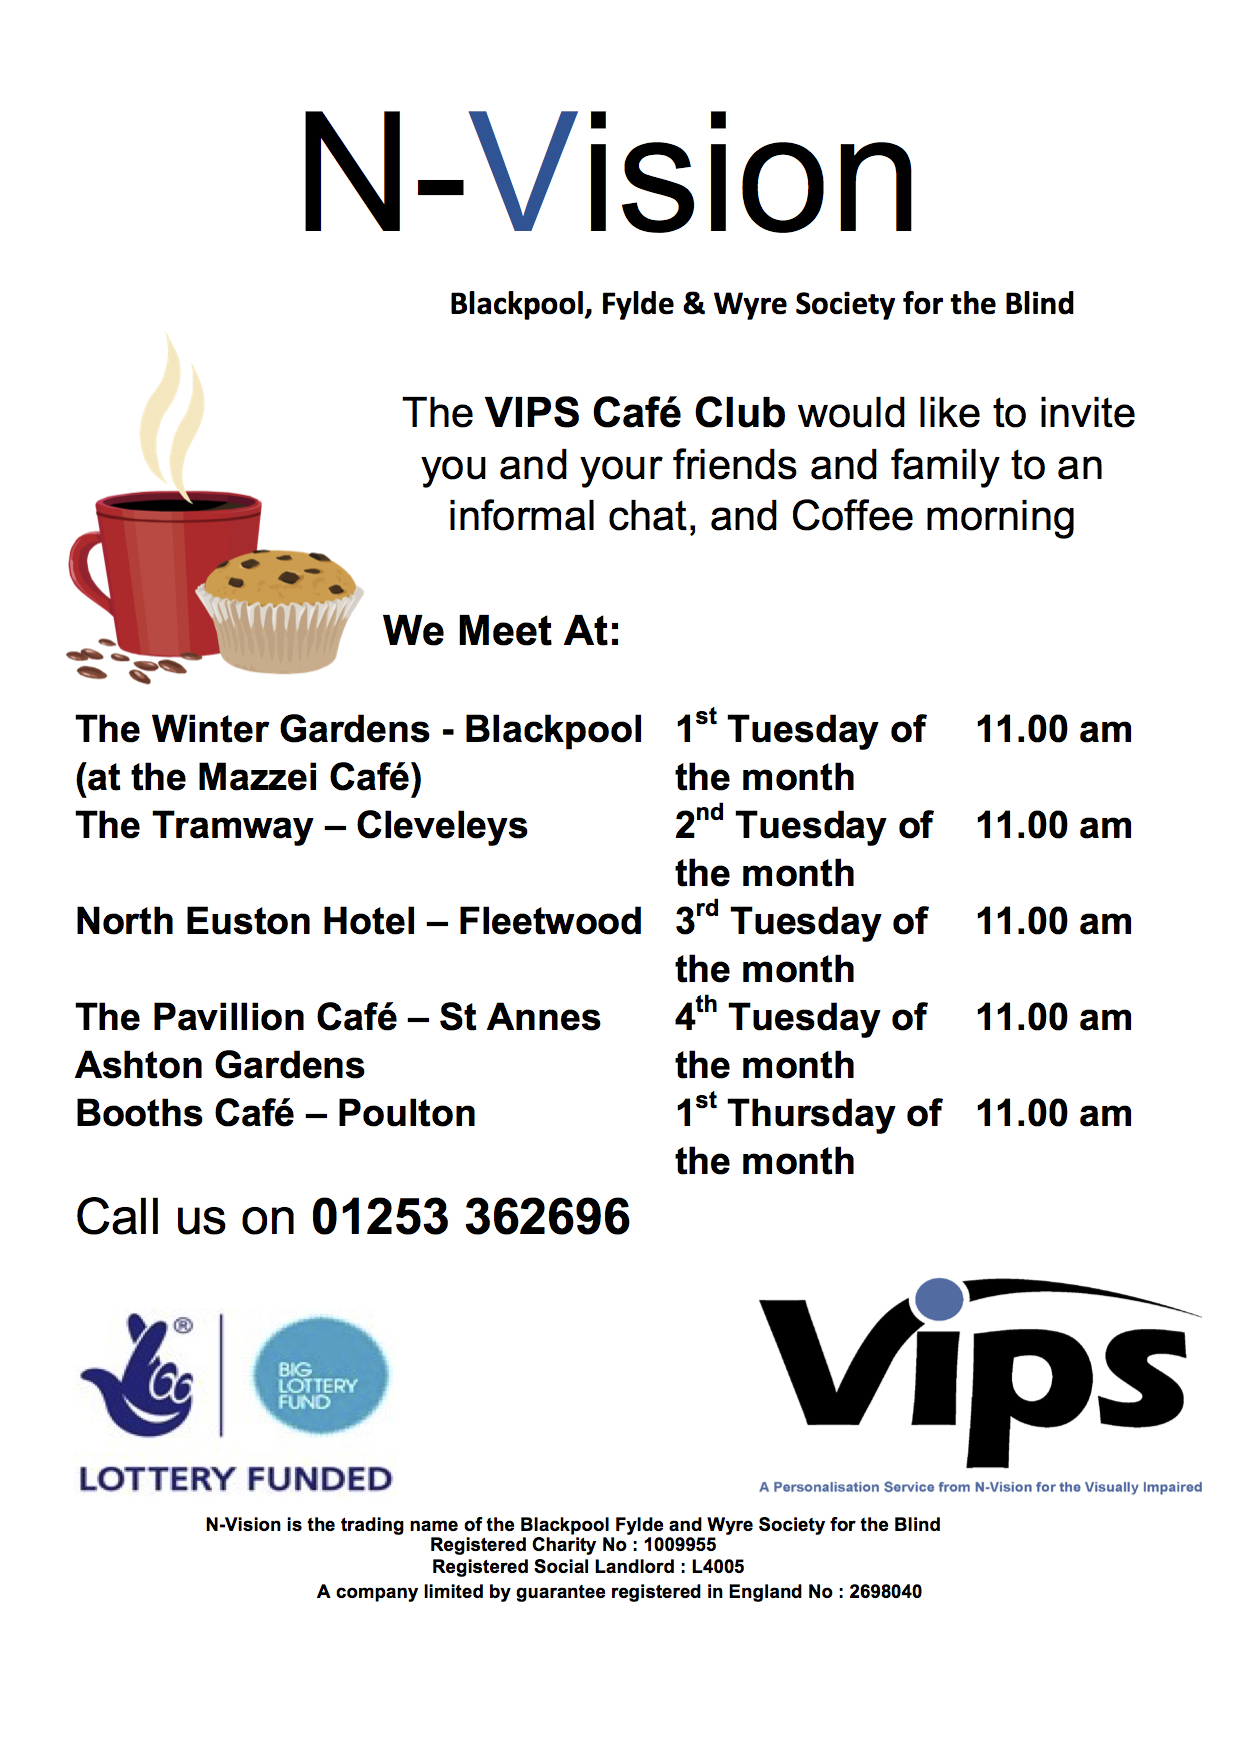 The VIPS Café Club would like to invite you and your friends and family to an informal chat, and Coffee morning   We Meet At:   The Winter Gardens - Blackpool 	1st Tuesday of 	11.00 am (at the Mazzei Café)				the month The Tramway – Cleveleys		2nd Tuesday of	11.00 am 								the month North Euston Hotel – Fleetwood	3rd Tuesday of	11.00 am 								the month The Pavillion Café – St Annes	4th Tuesday of	11.00 am Ashton Gardens					the month Booths Café – Poulton			1st Thursday of	11.00 am 								the month Call us on 01253 362696